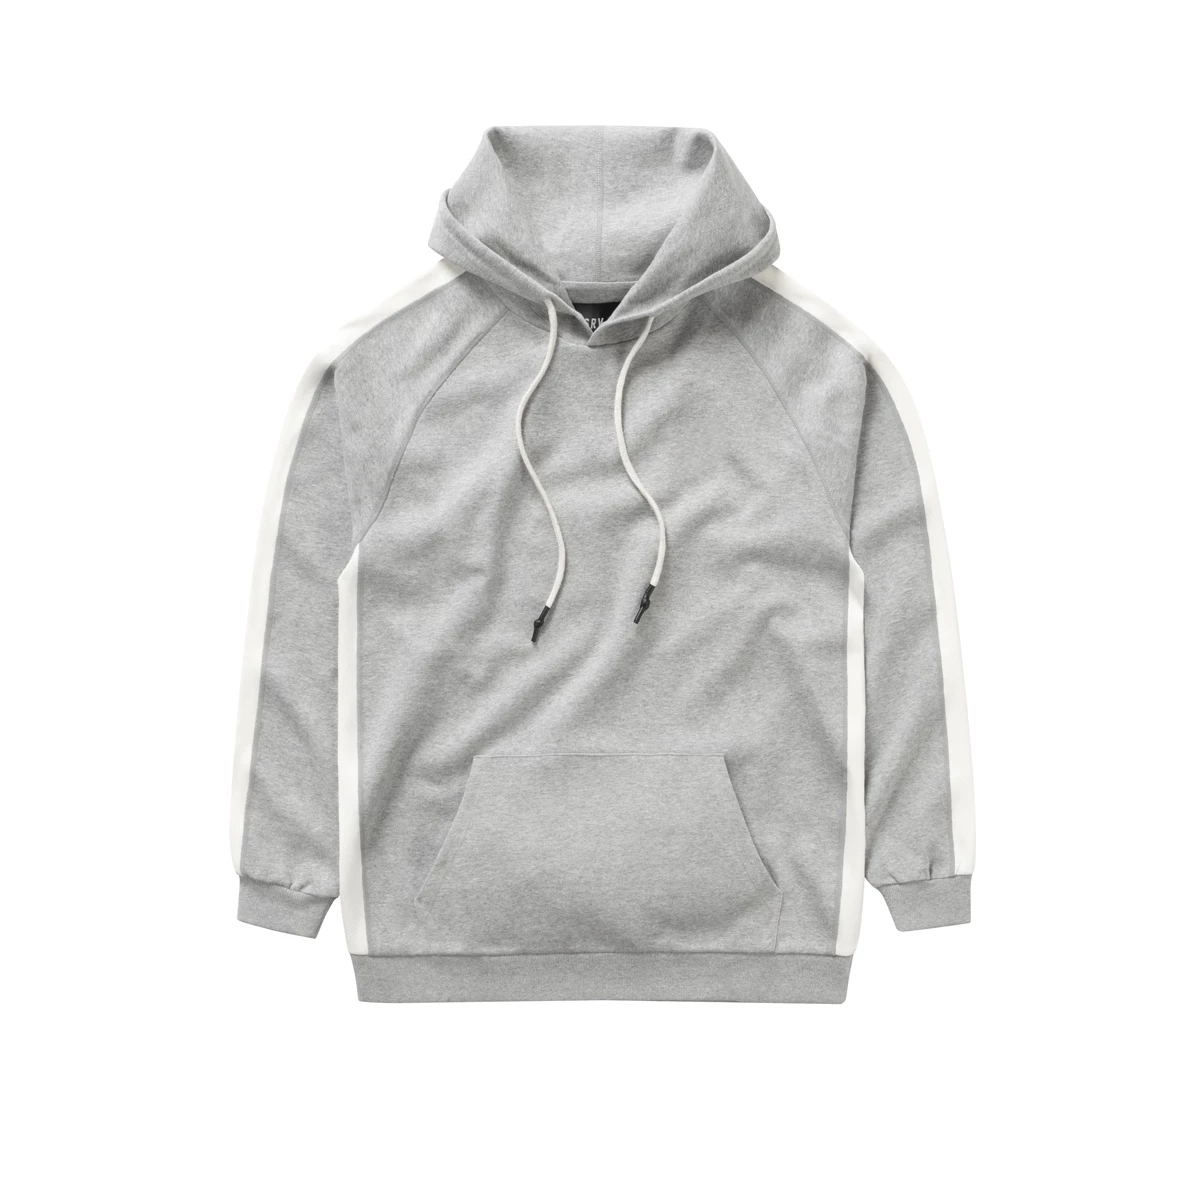 TopShow Wholesale trendy mens hoodies for cosmetics-2